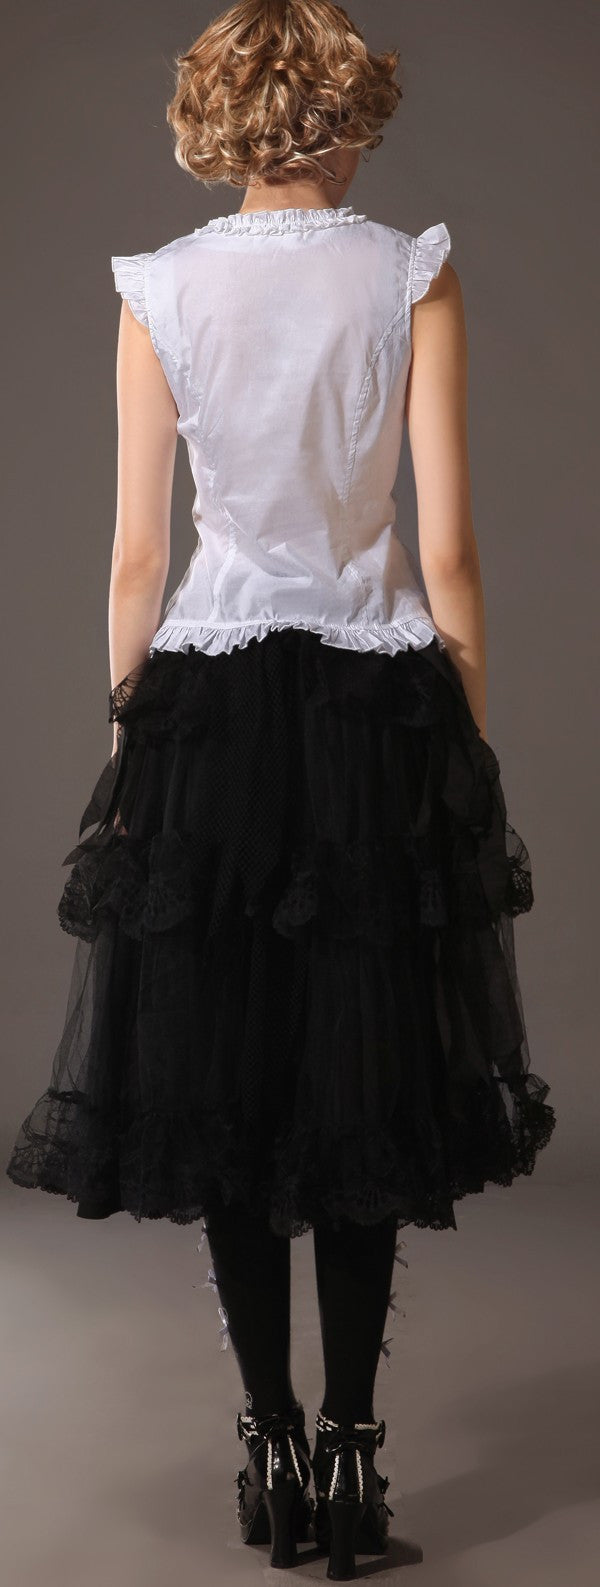 61270 Gothic Long Lace Skirt